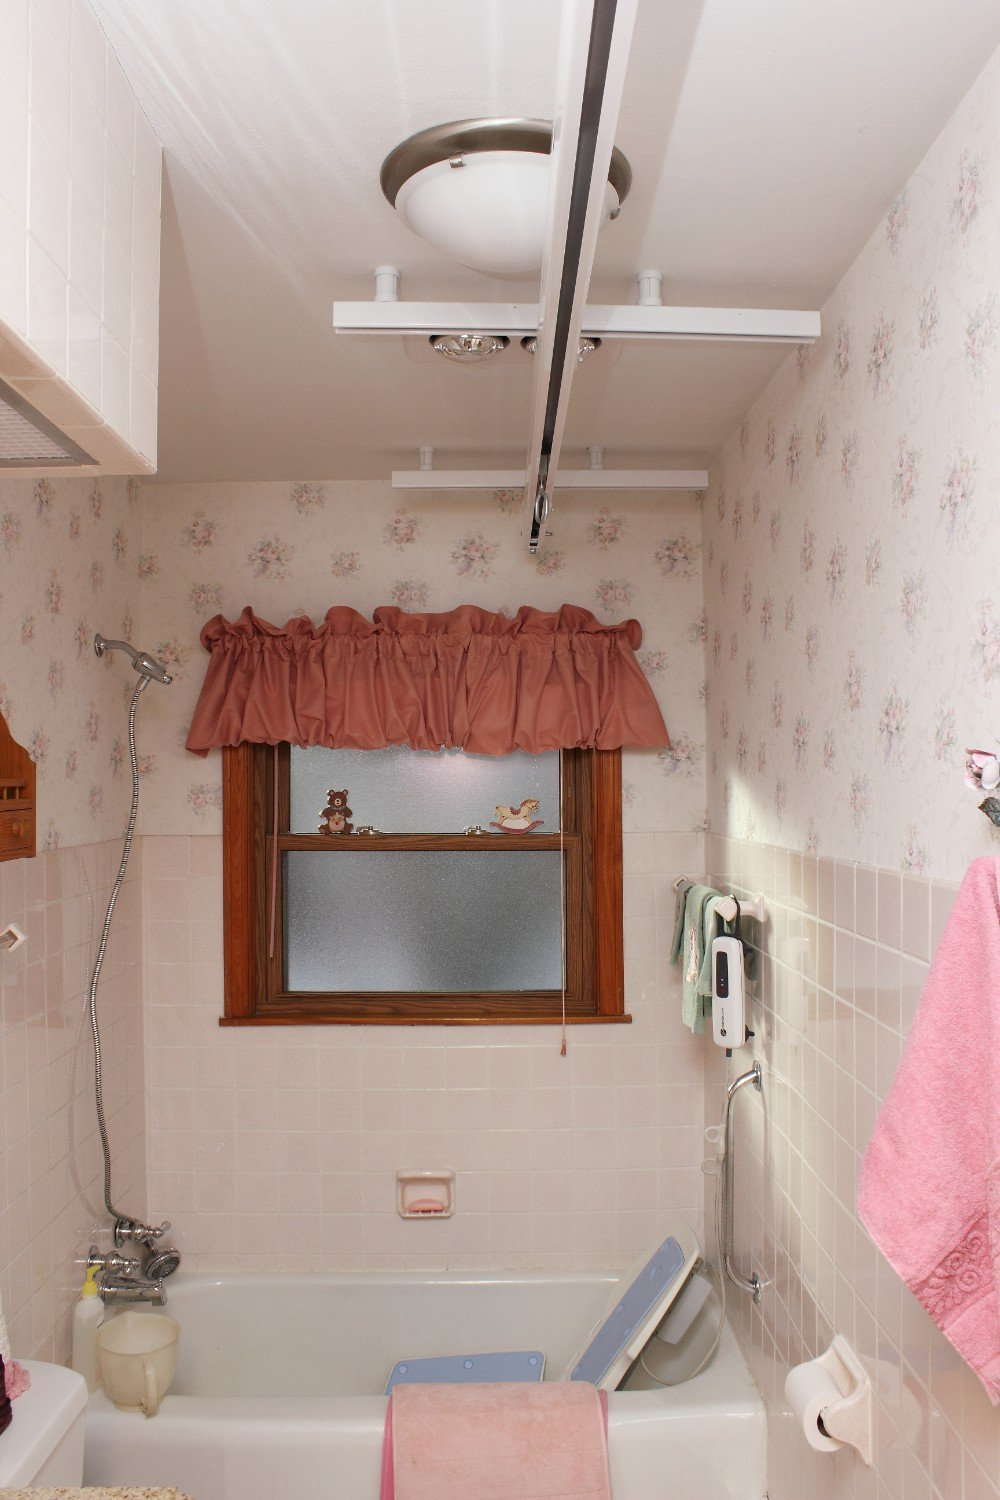 Accessible Bathroom Ceiling Lift Track Installed by BILD in Delafield